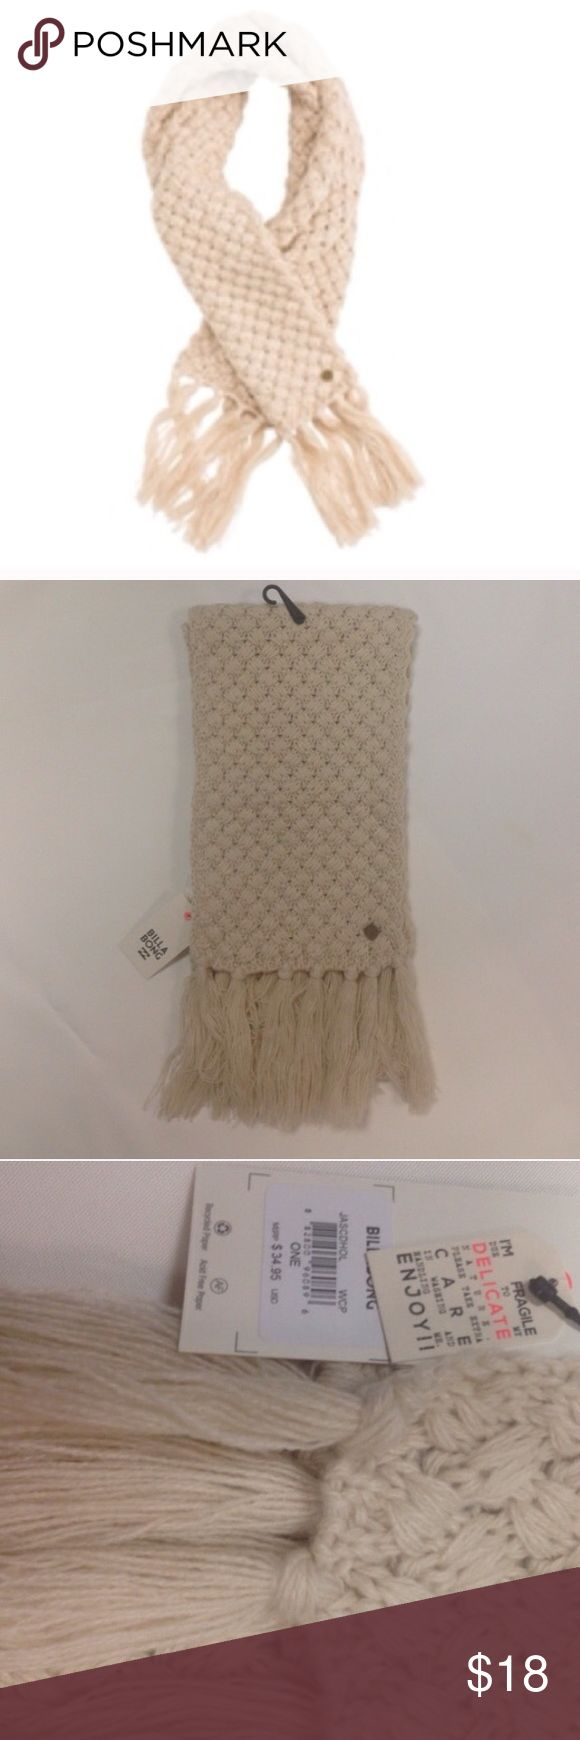 "NWT Billabong Tan Fringed Scarf NWT.  Cozy tan/cream scarf with fringed ends.  100% Acrylic.  Approx measurements: 7.5"" wide 68"" long. Billabong Accessories Scarves & Wraps"